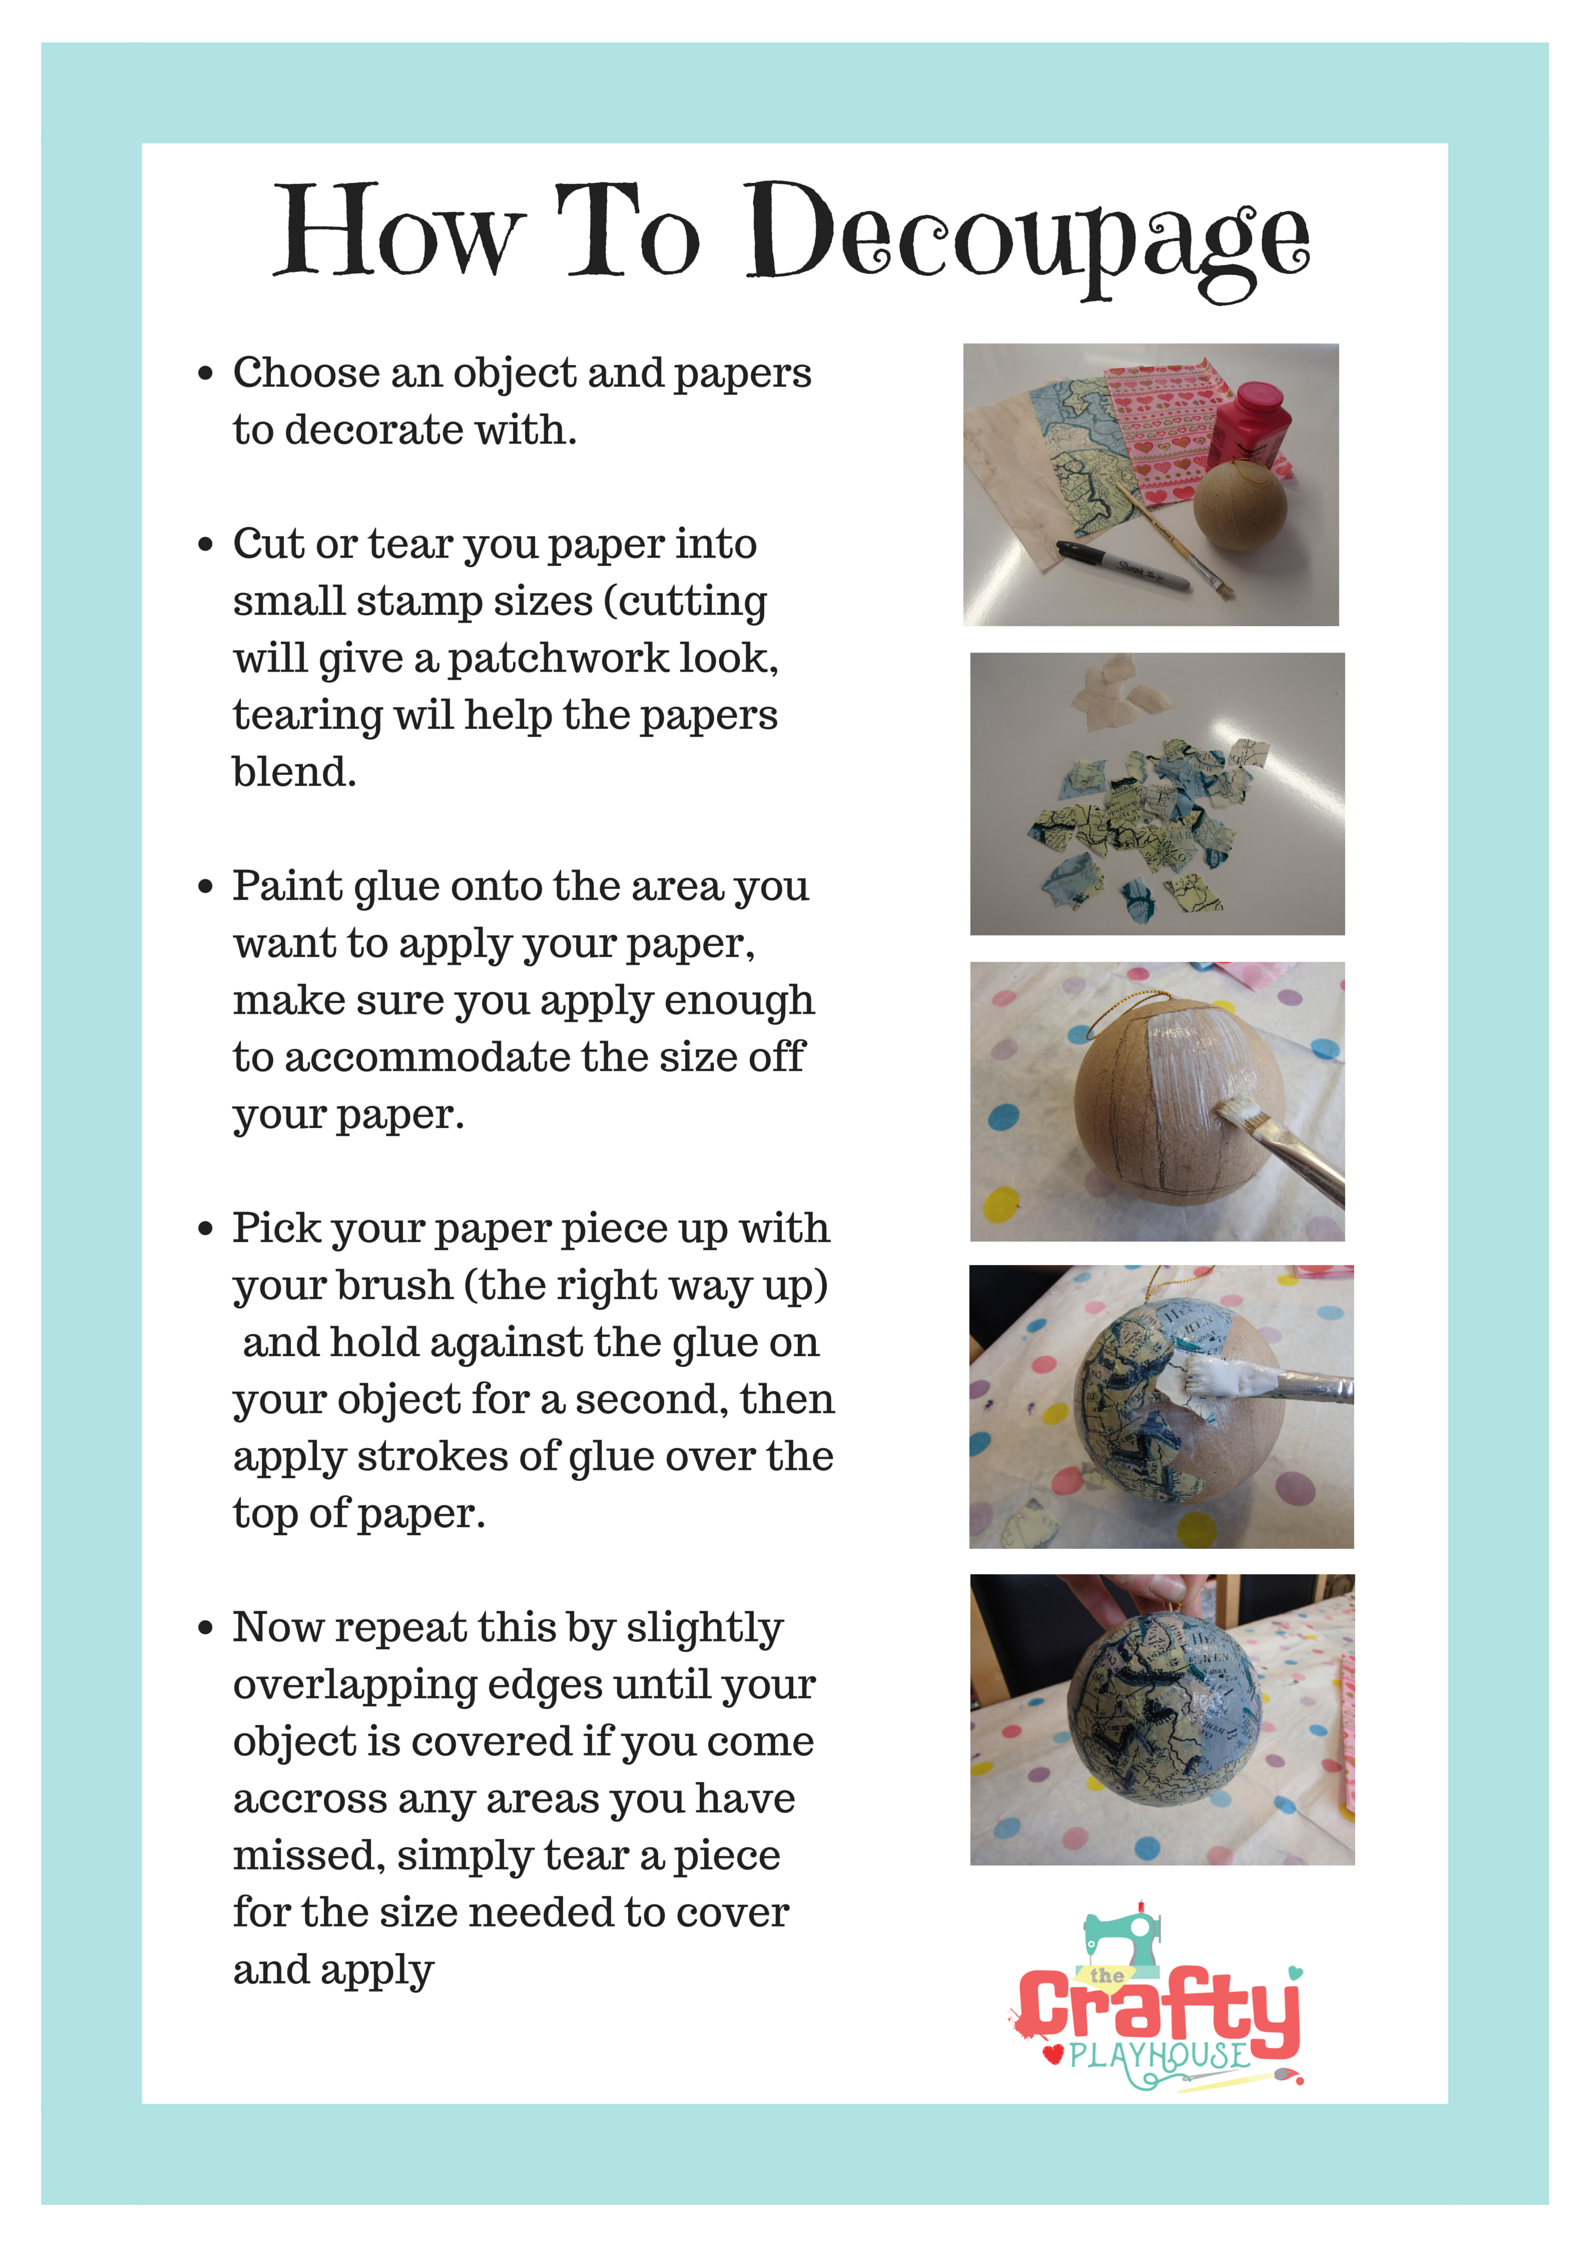 How to Decoupage/Decopatch for beginners \u2026